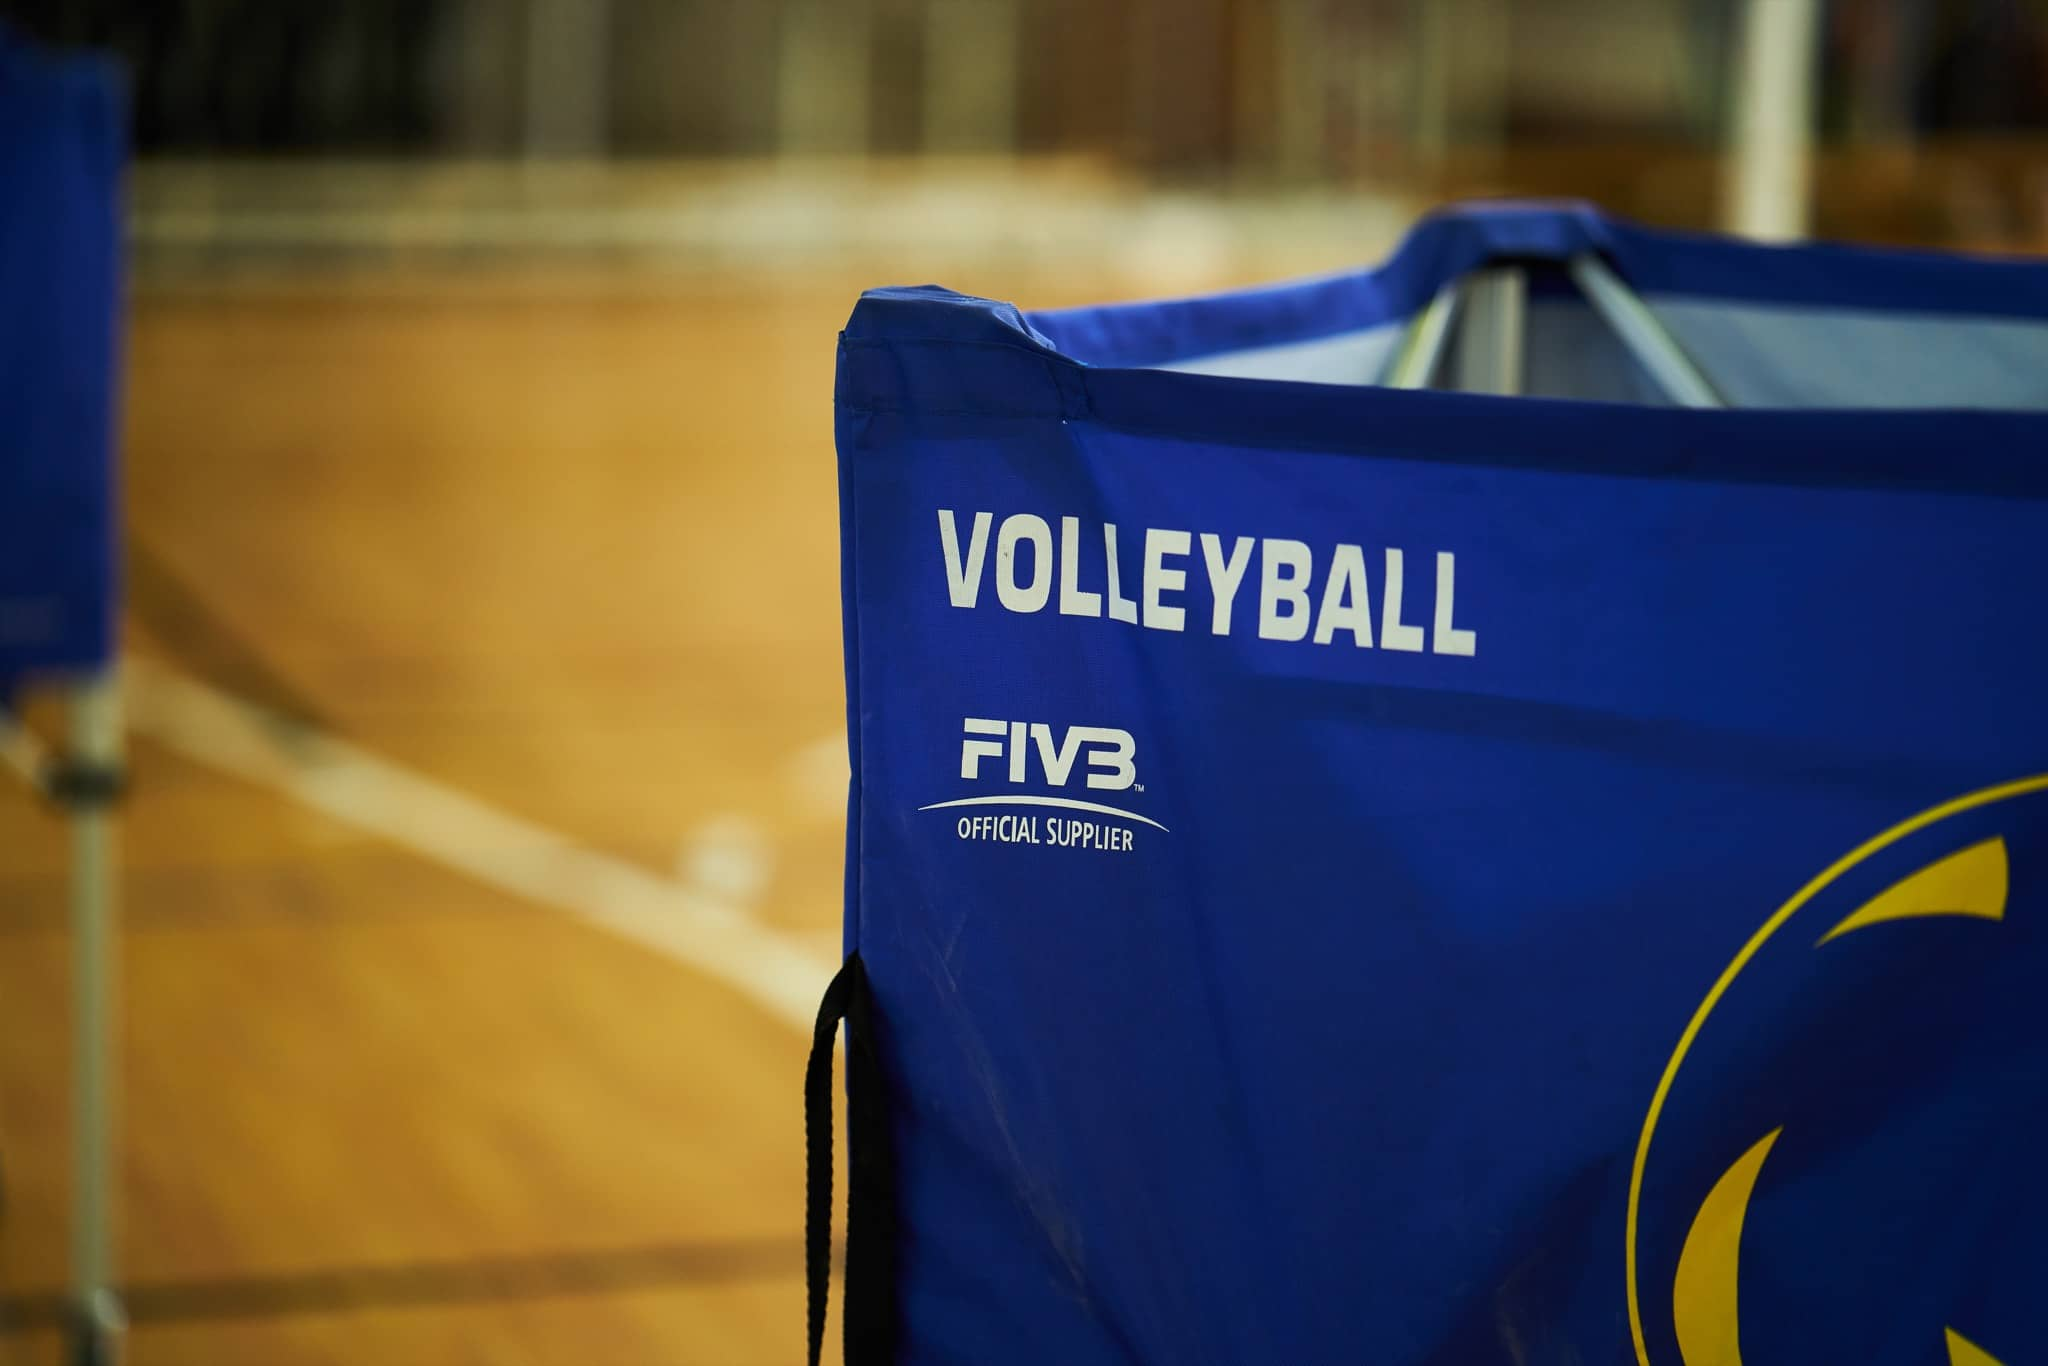 volleyball-academy-dubai-photo-00013